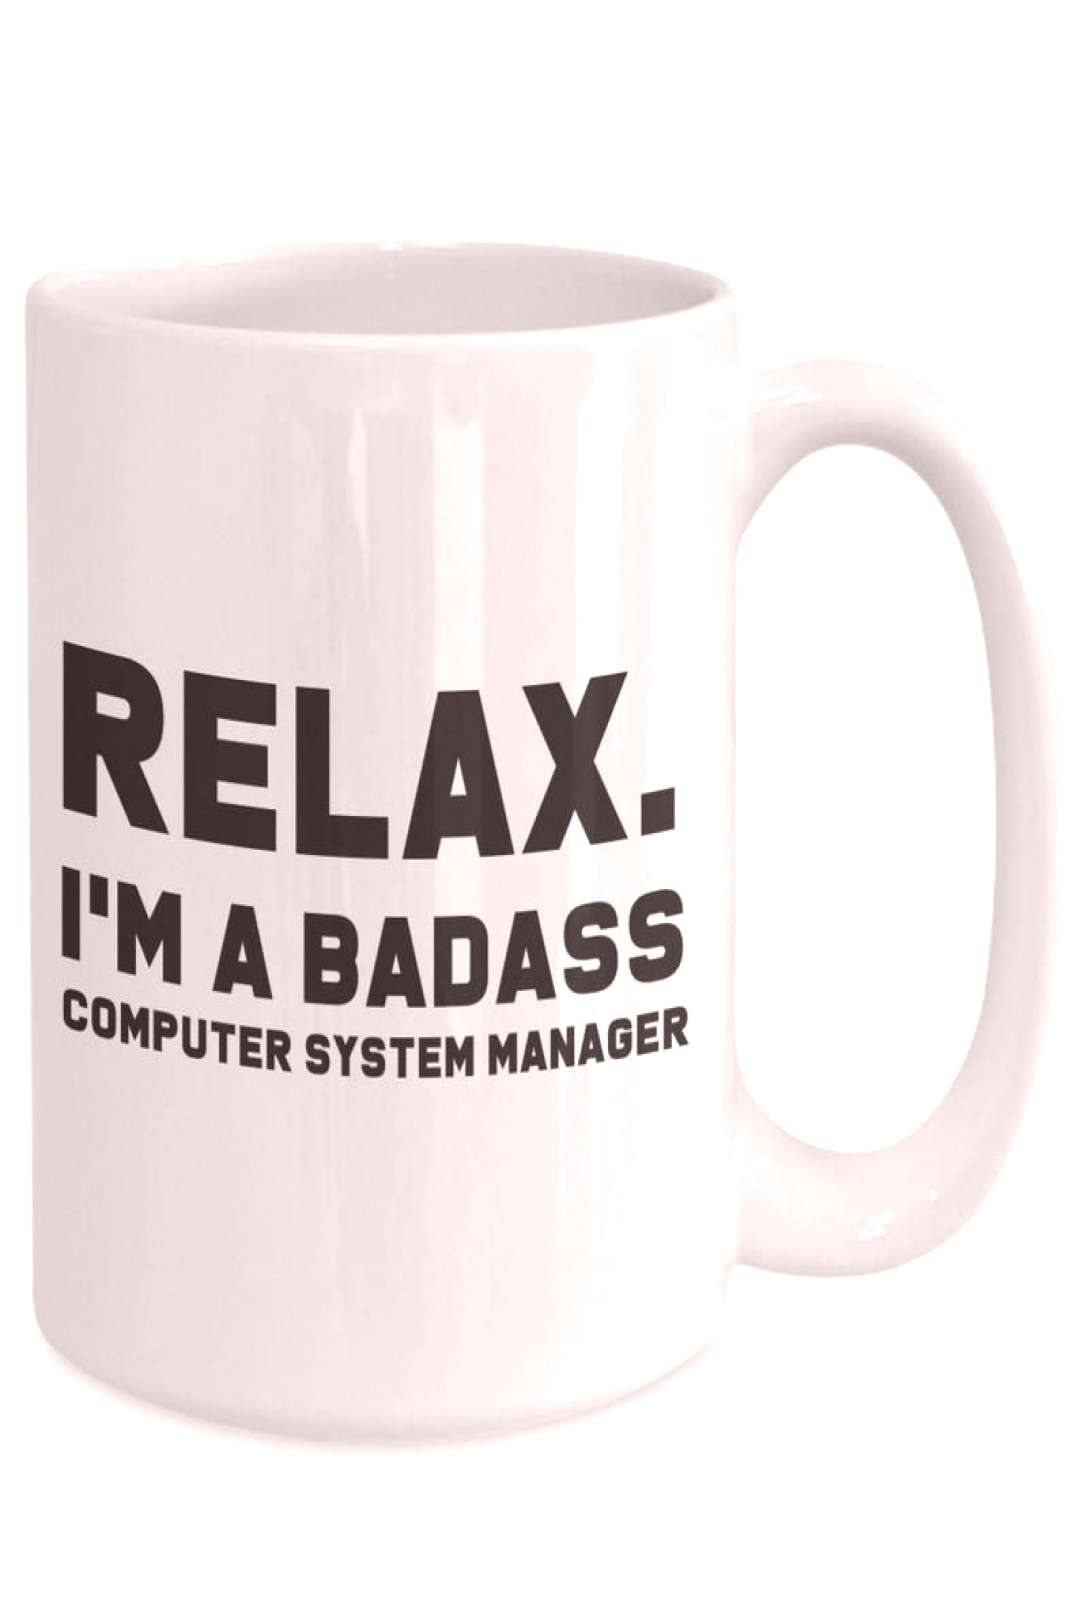 Badass computer system manager gift for computer system | Etsy